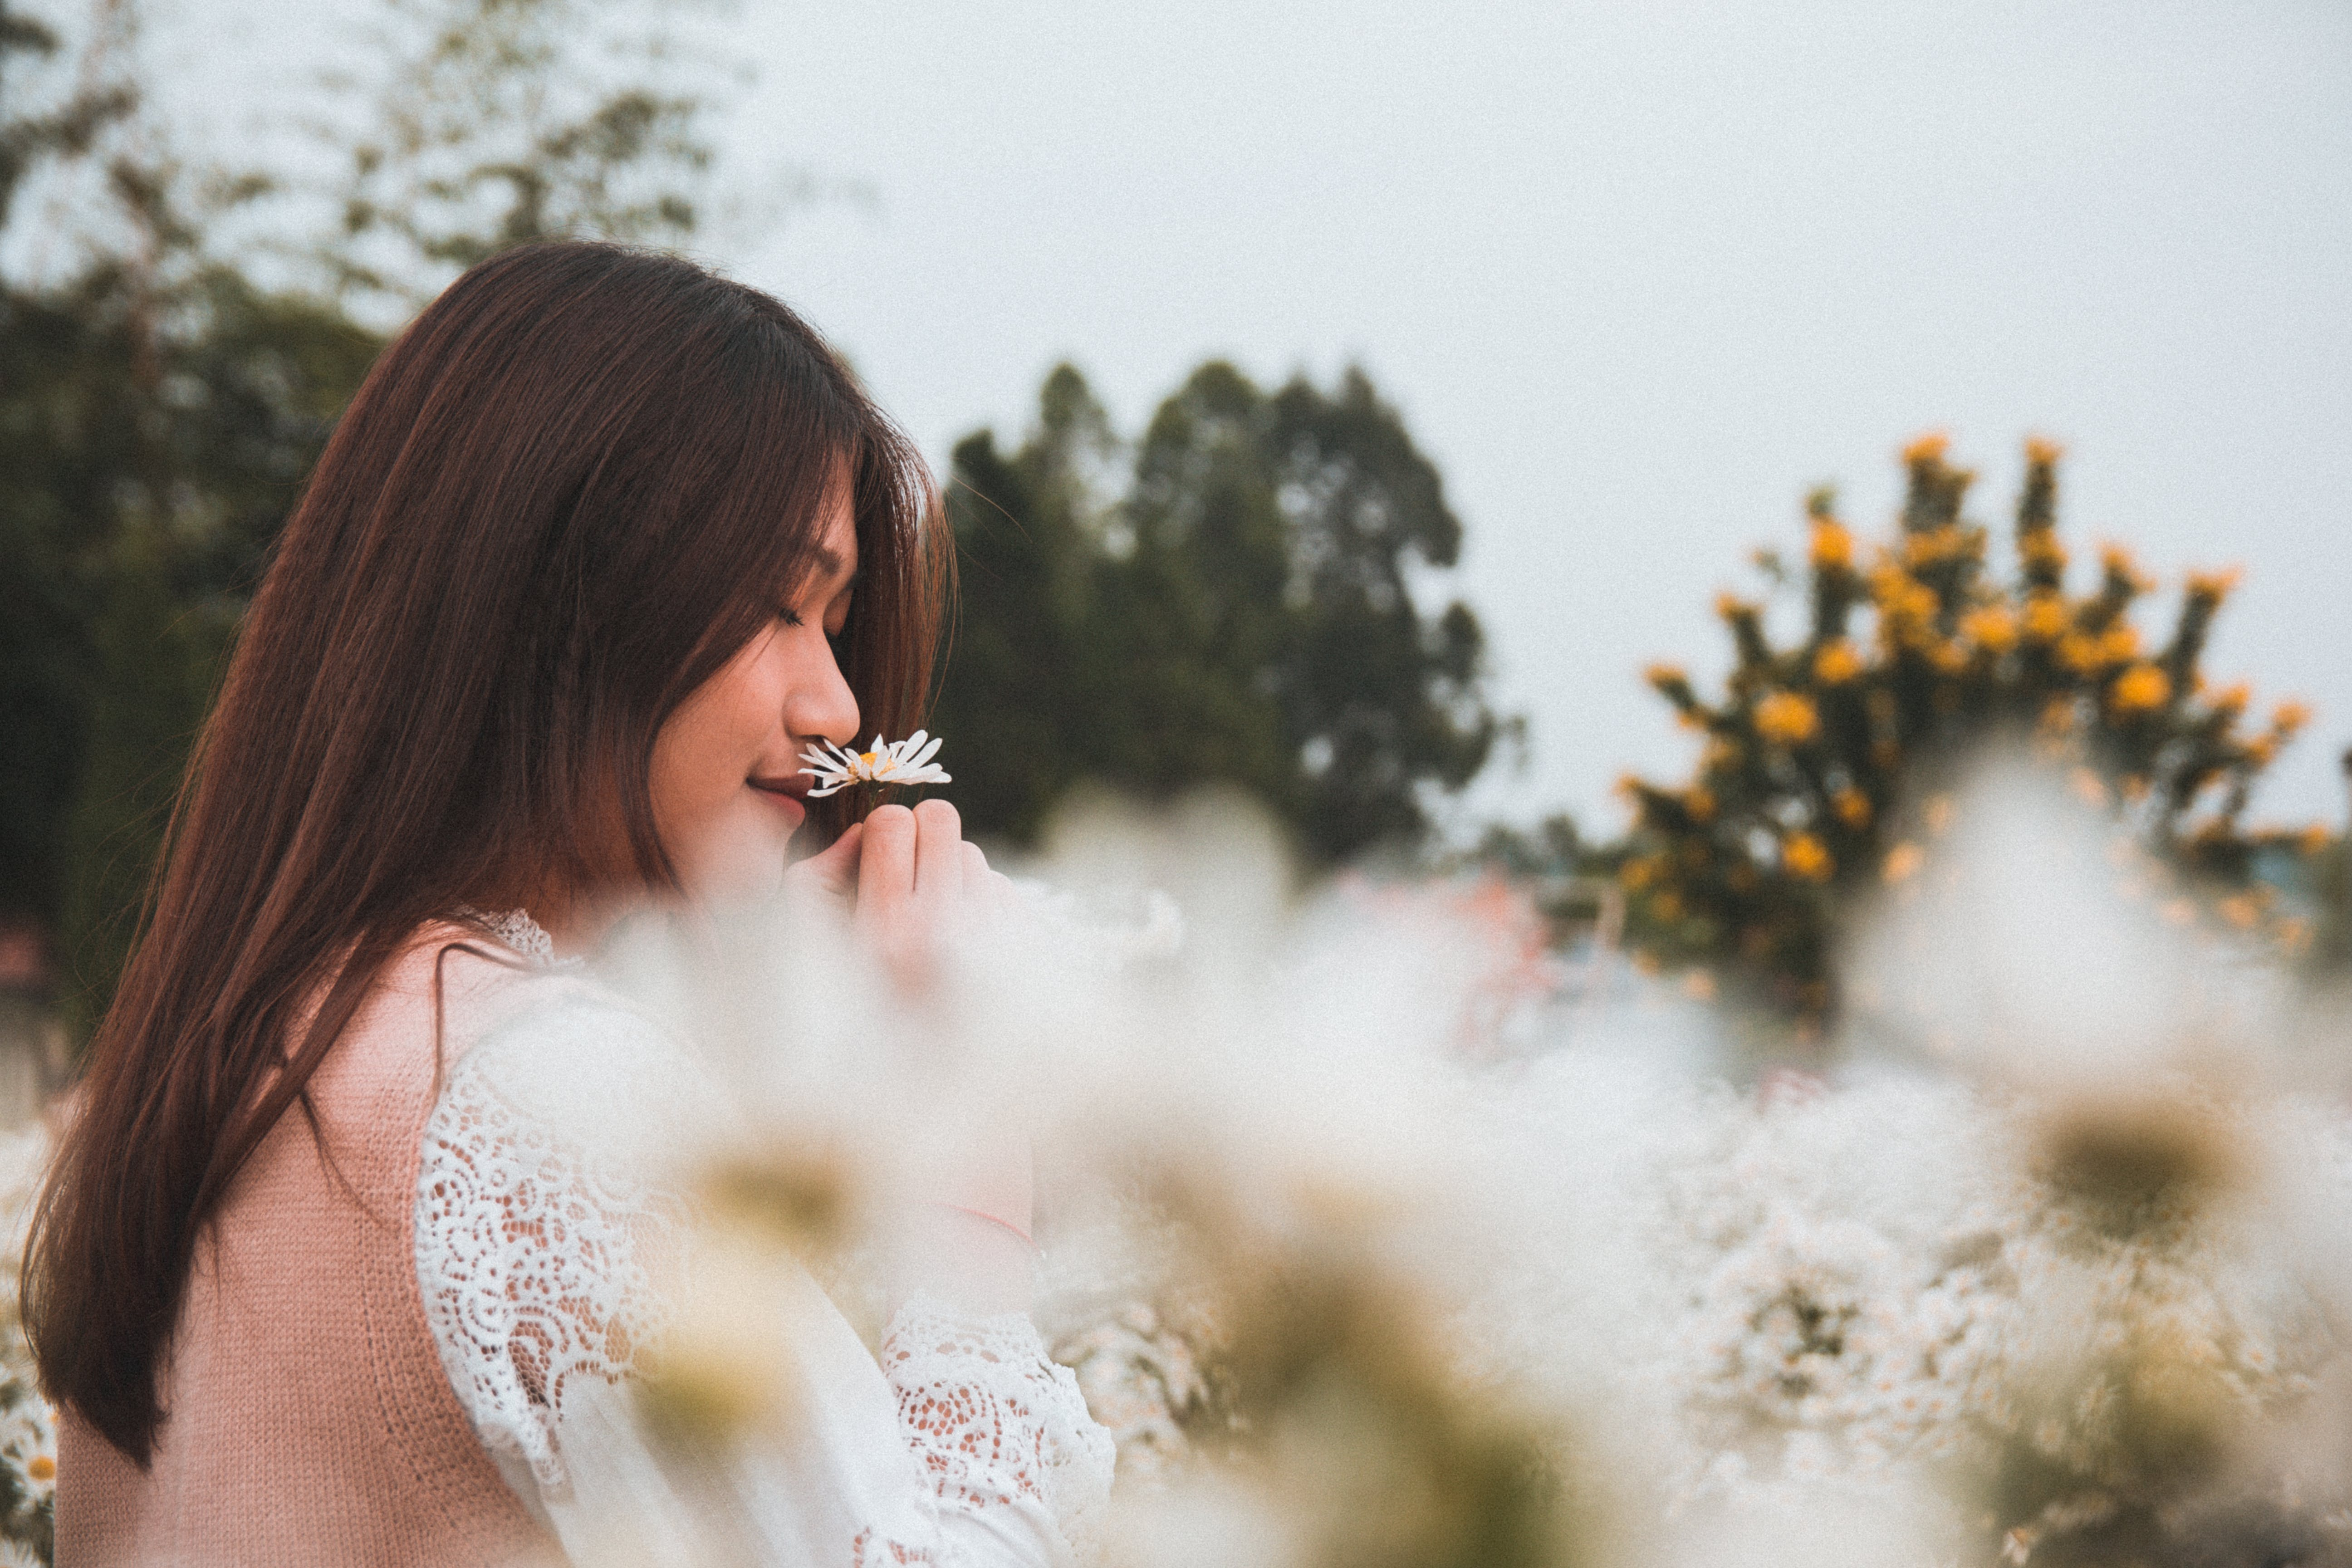 Woman Smelling Flower